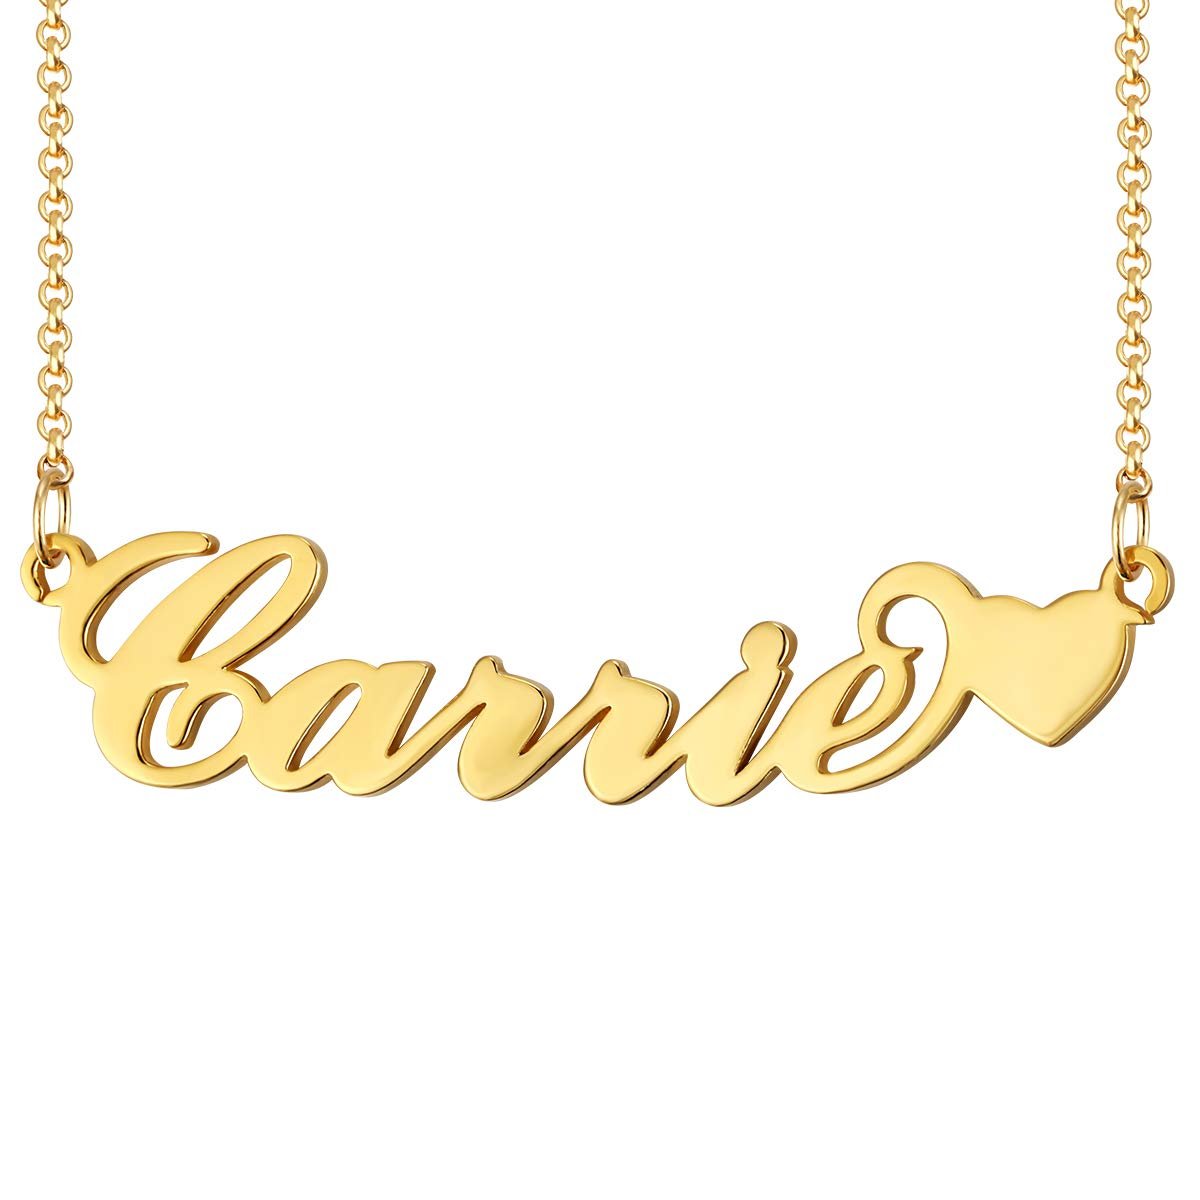 Custom Name Necklace Personalized 18K Gold Plated Nameplate Jewelry Gift for Women Grils